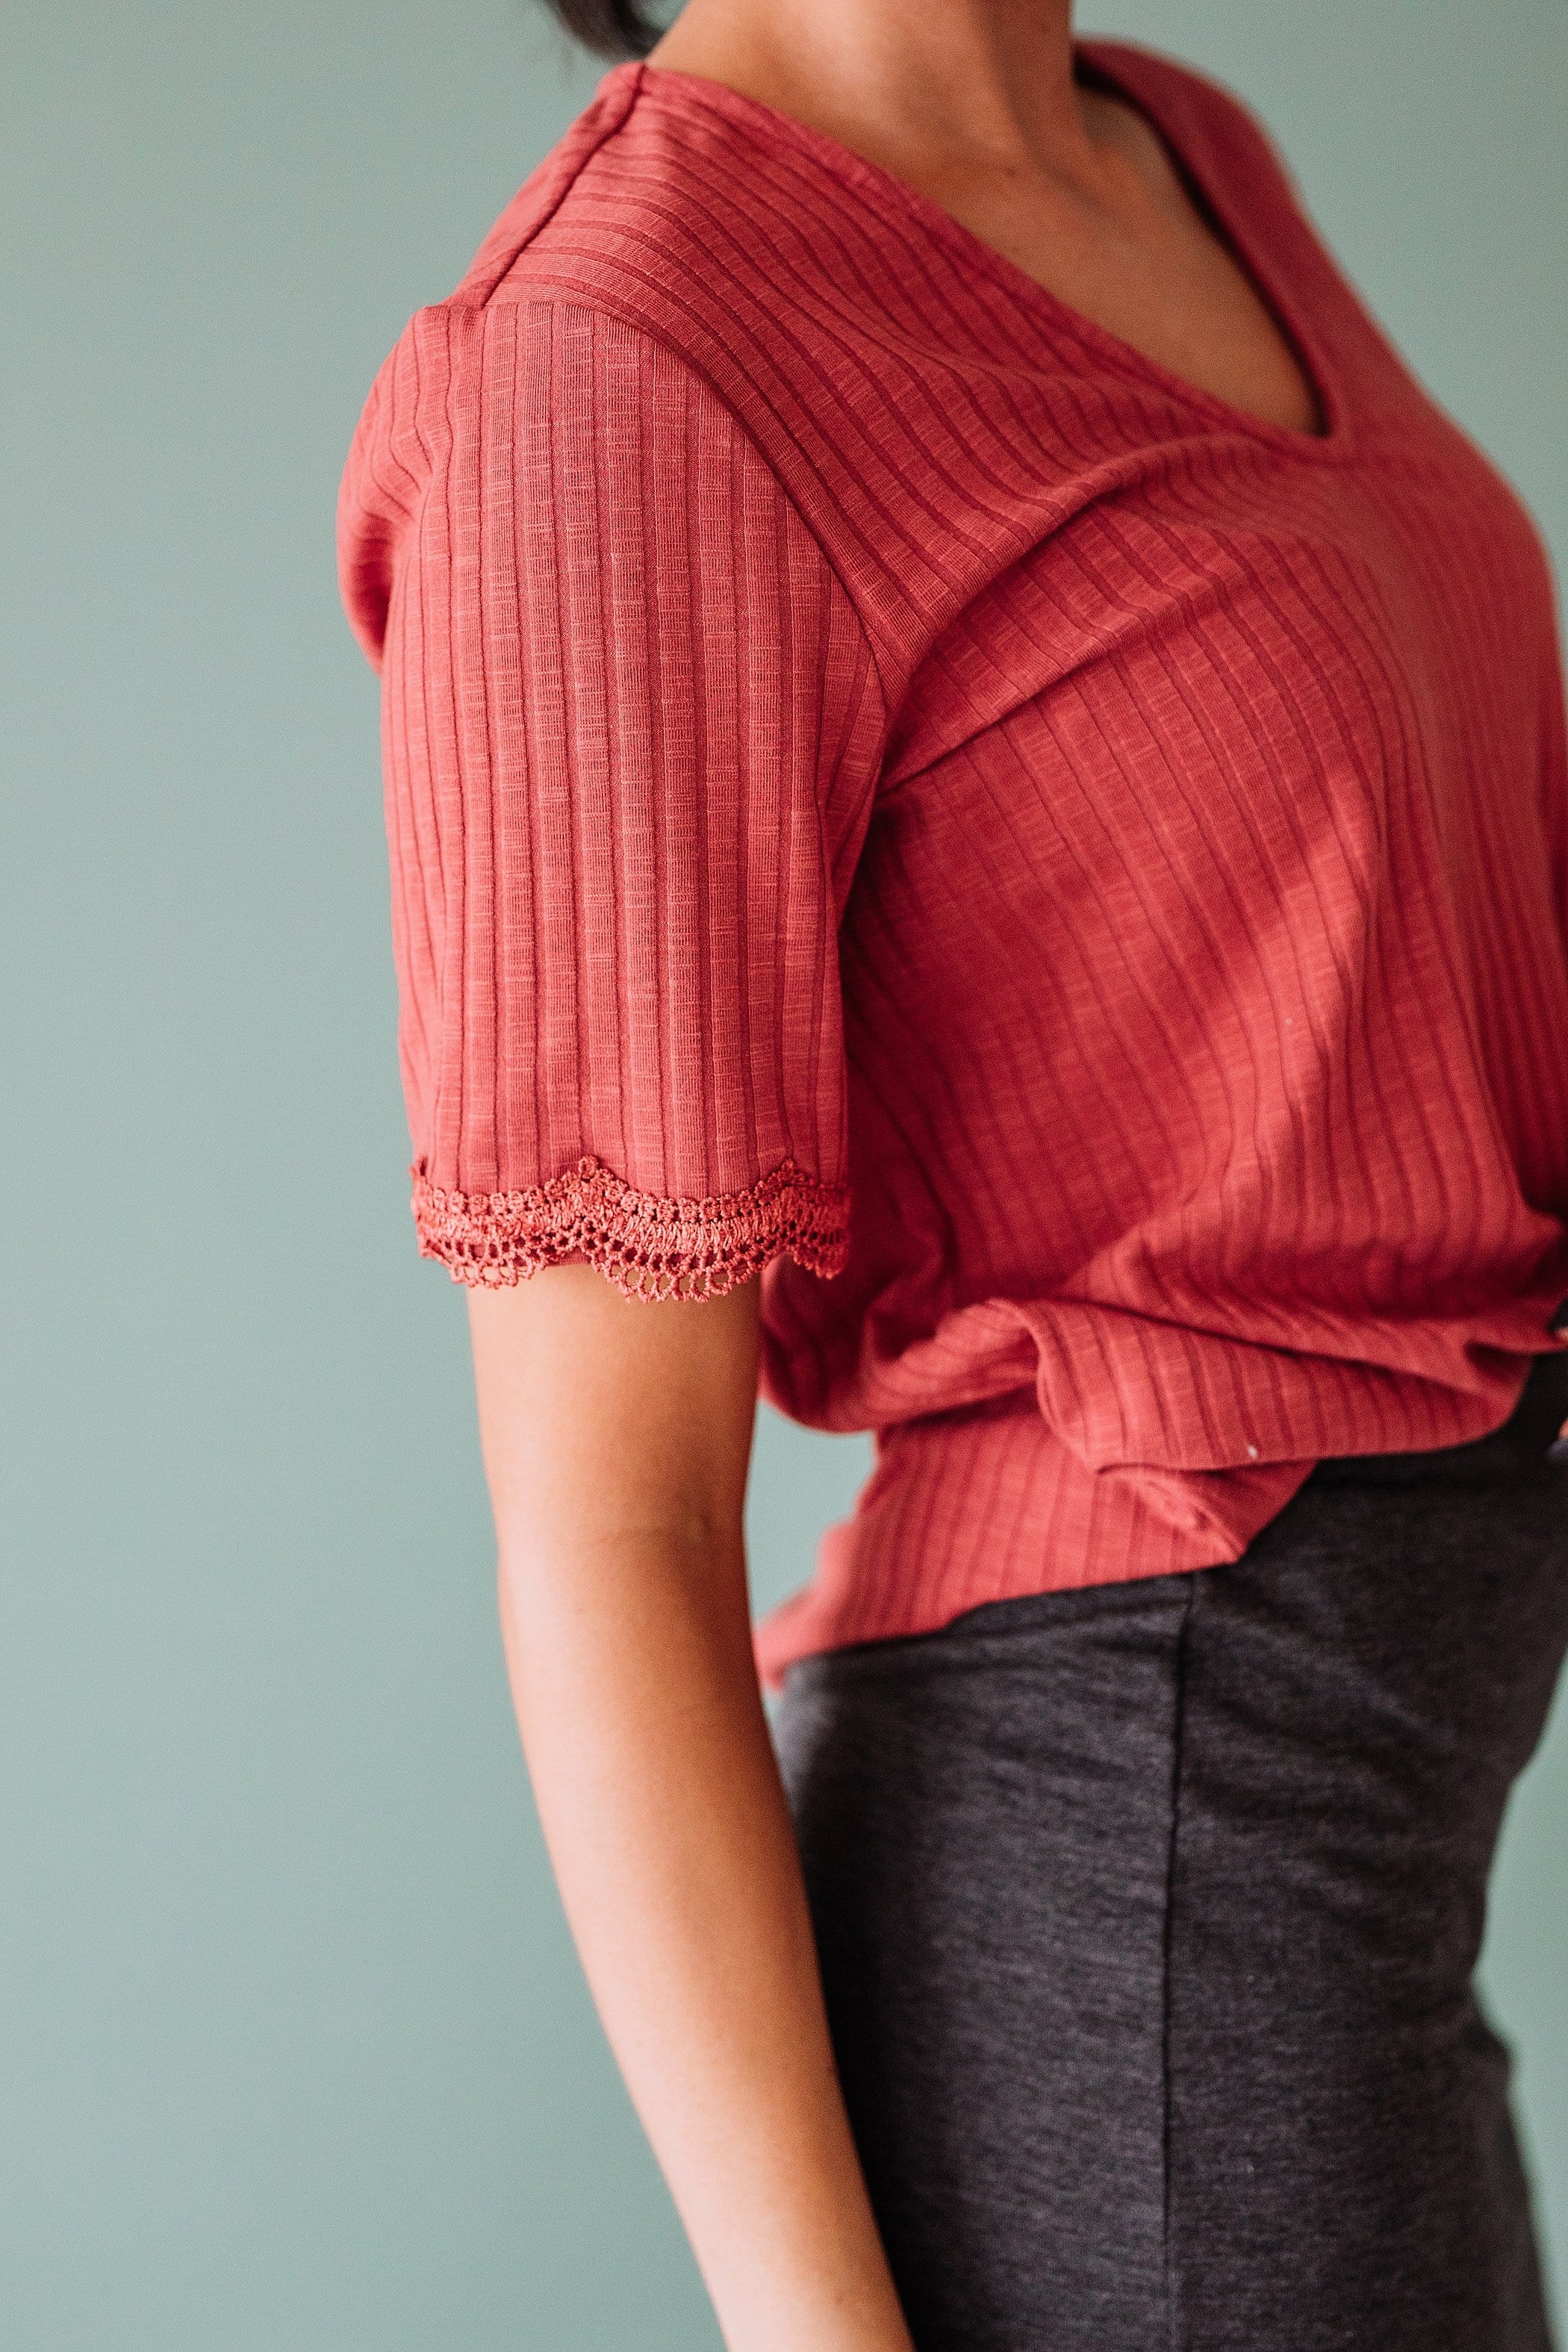 The Adrian Ribbed Knit Top in Taupe and Rust